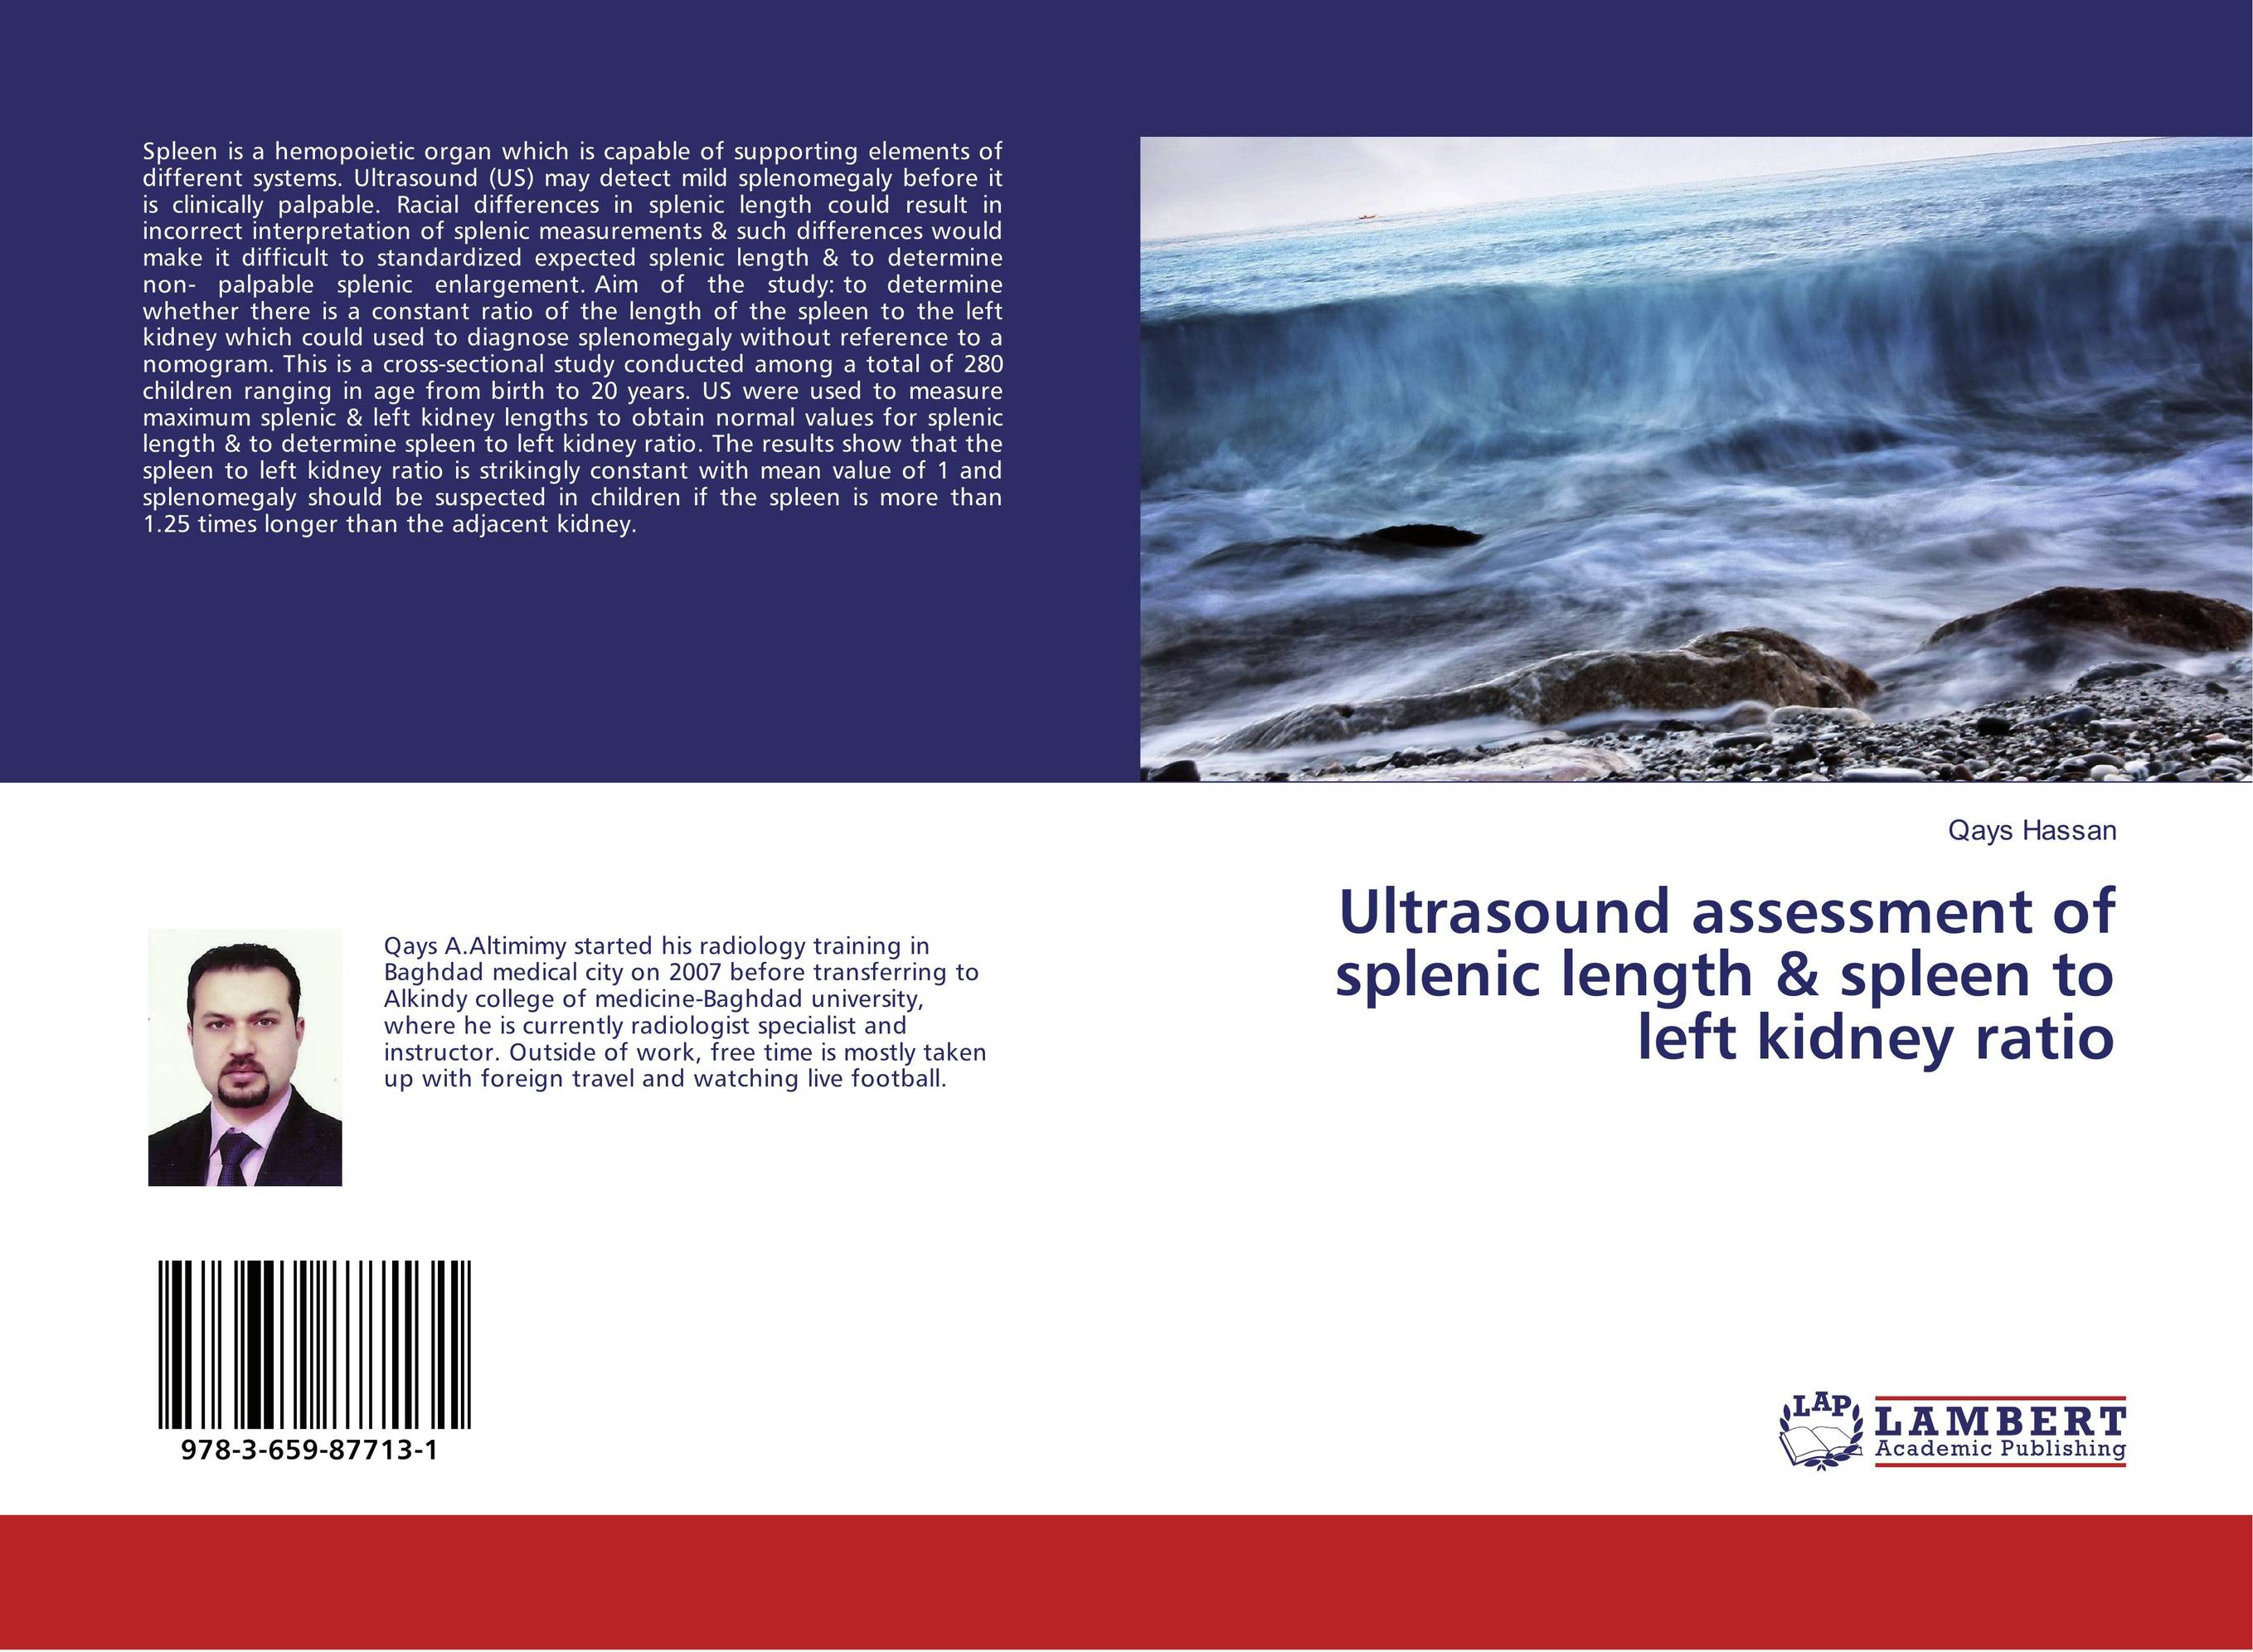 Ultrasound assessment of splenic length & spleen to left kidney ratio repacholi essentials of medical ultrasound – a p ractintro to the principles etc